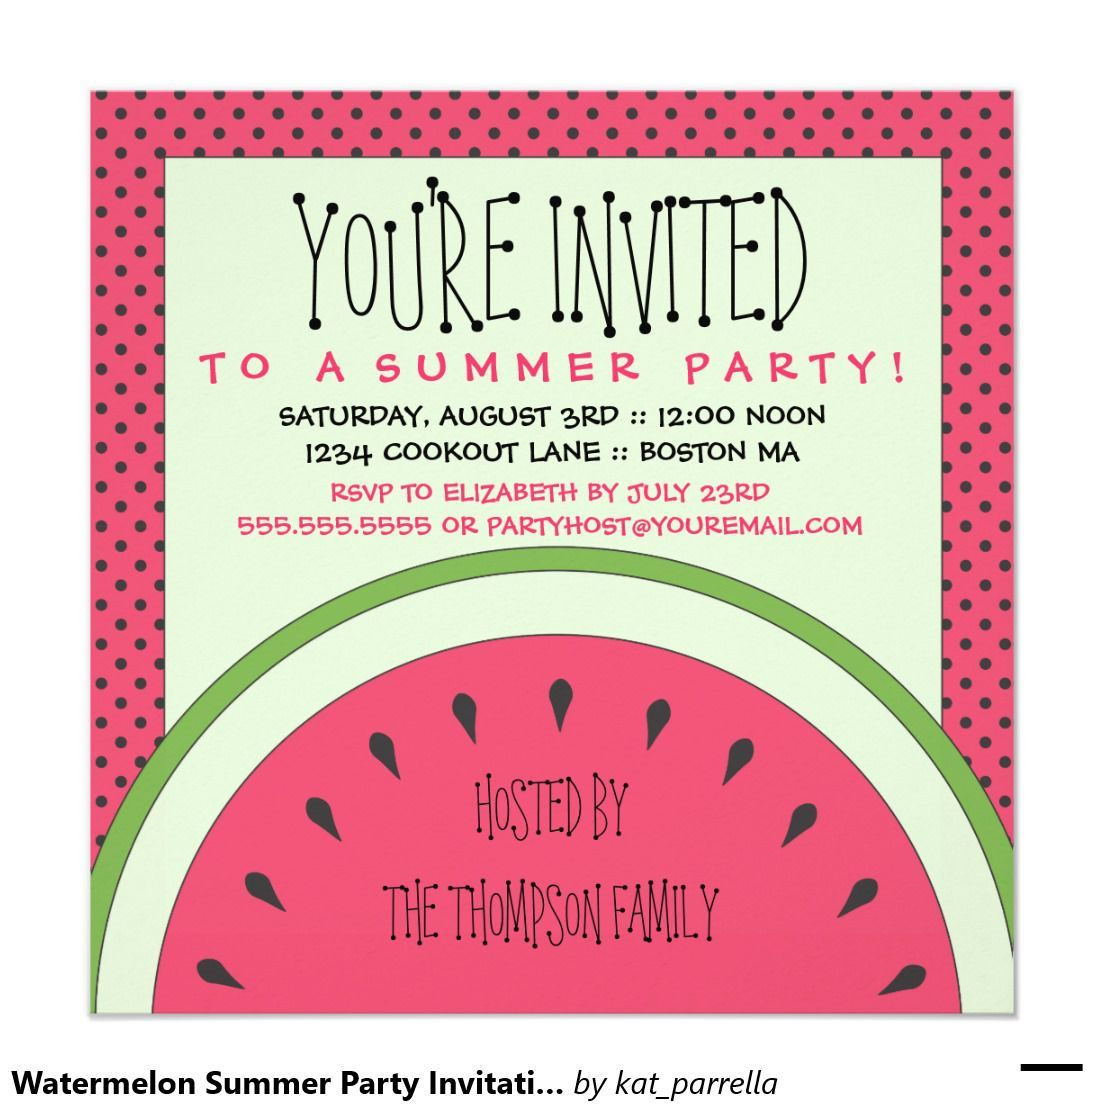 The Party Invitation Wording Free | Invitations Card by ...